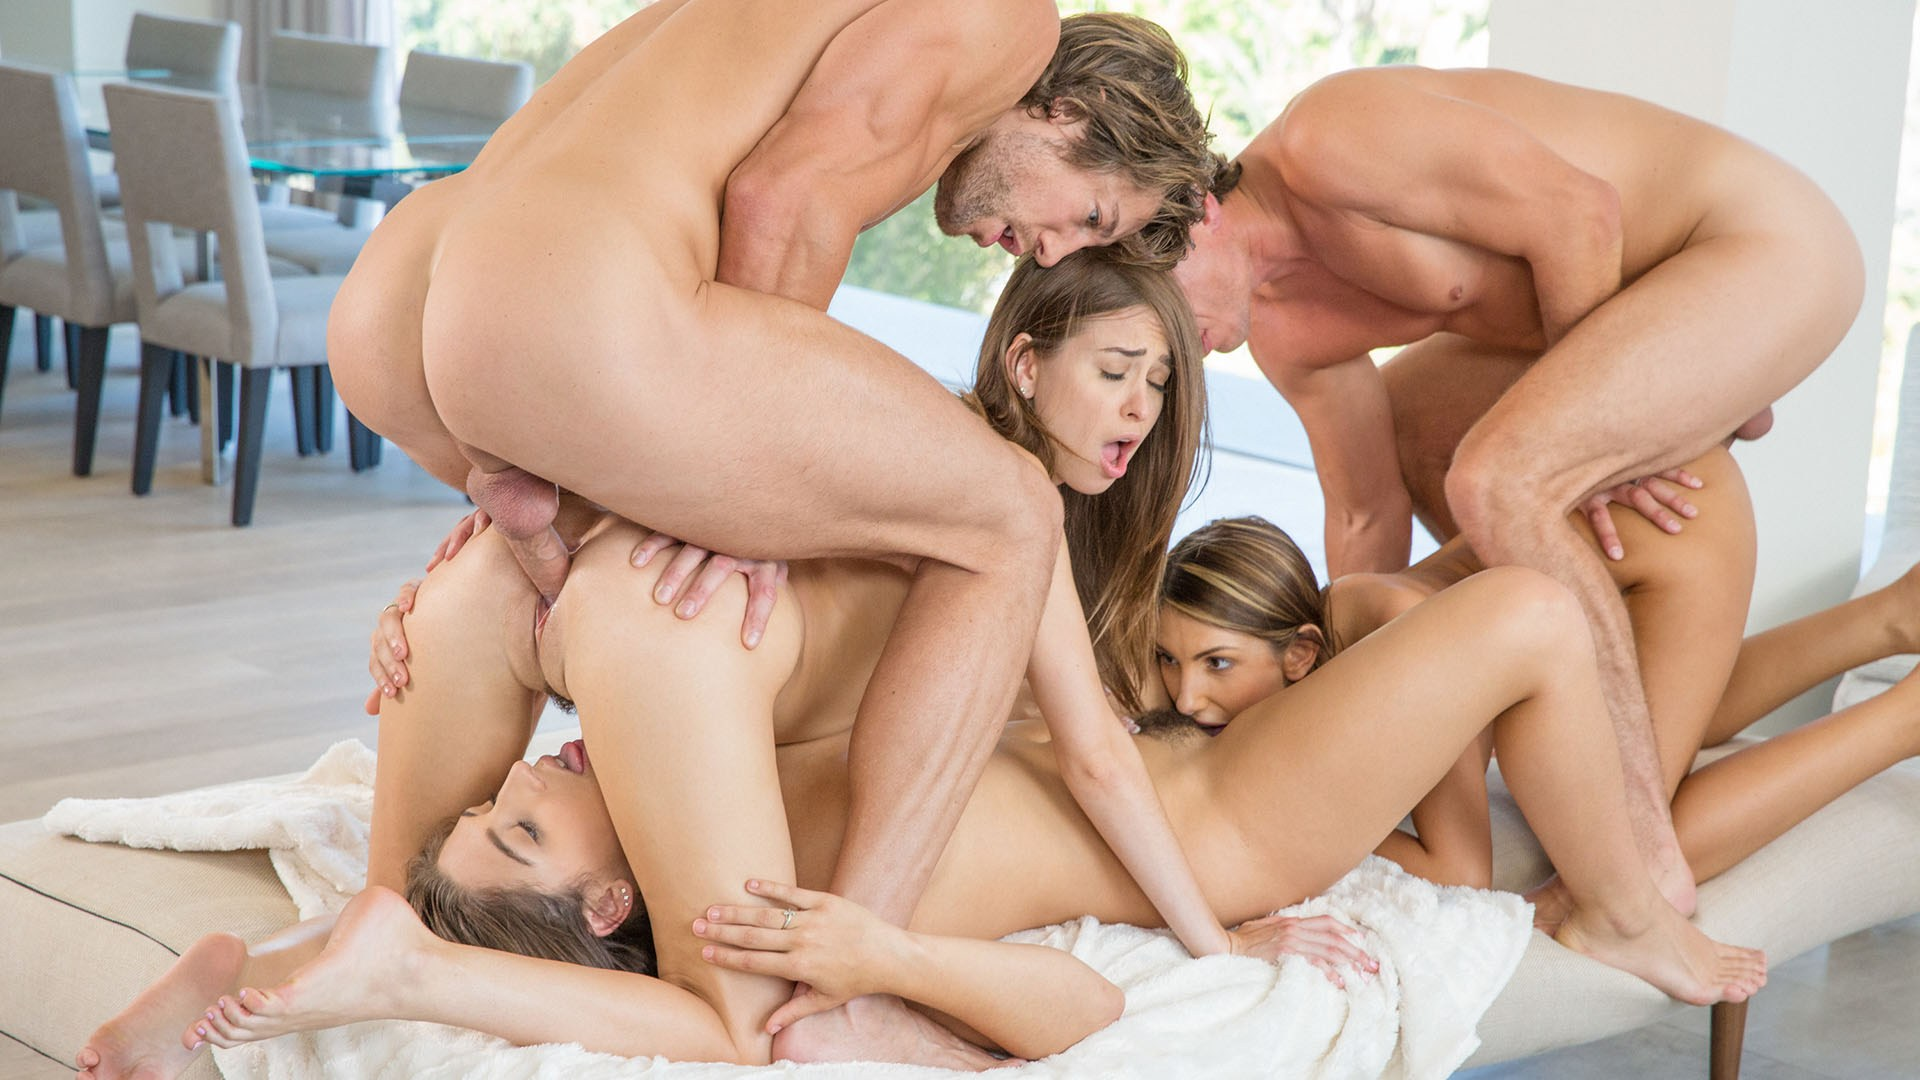 Free Group Sex Hd Porn Videos - Pornhd-9530